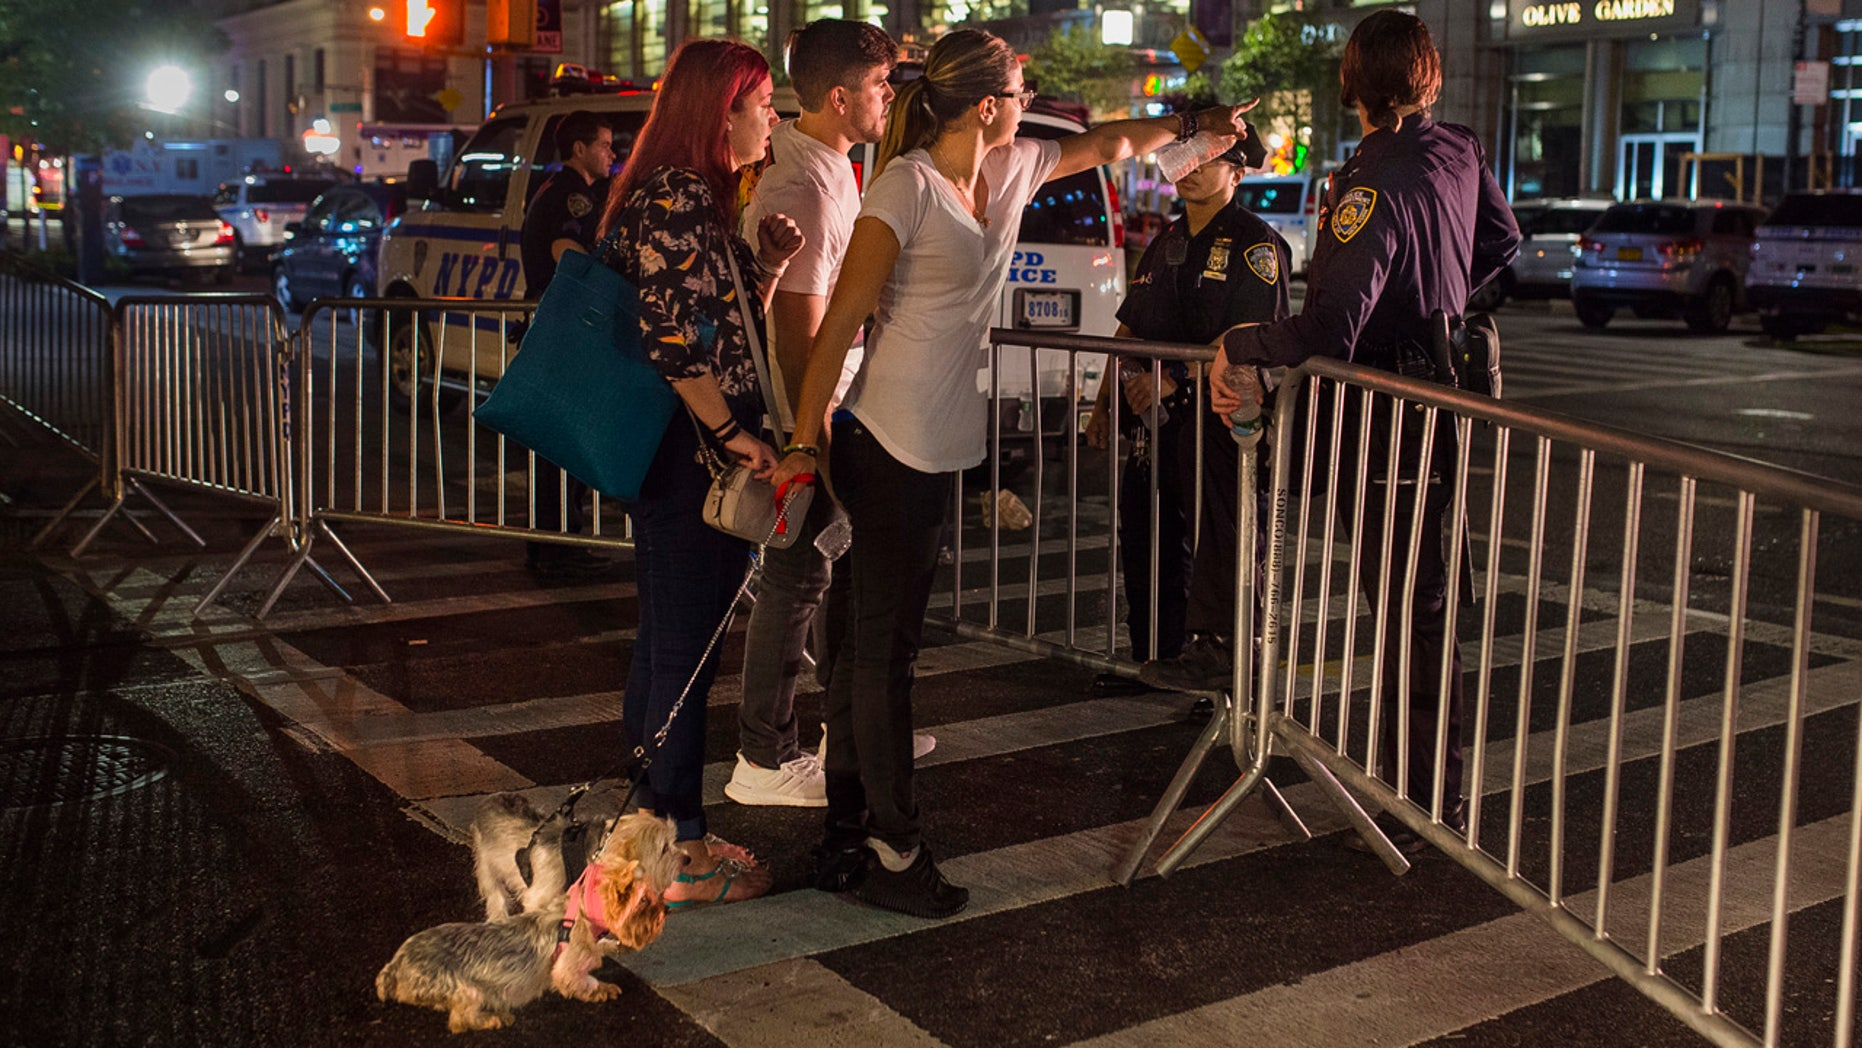 Sept. 18, 2016: People try to access the area near the scene of an explosion on West 23rd Street and 6th Avenue in Manhattan's Chelsea neighborhood.